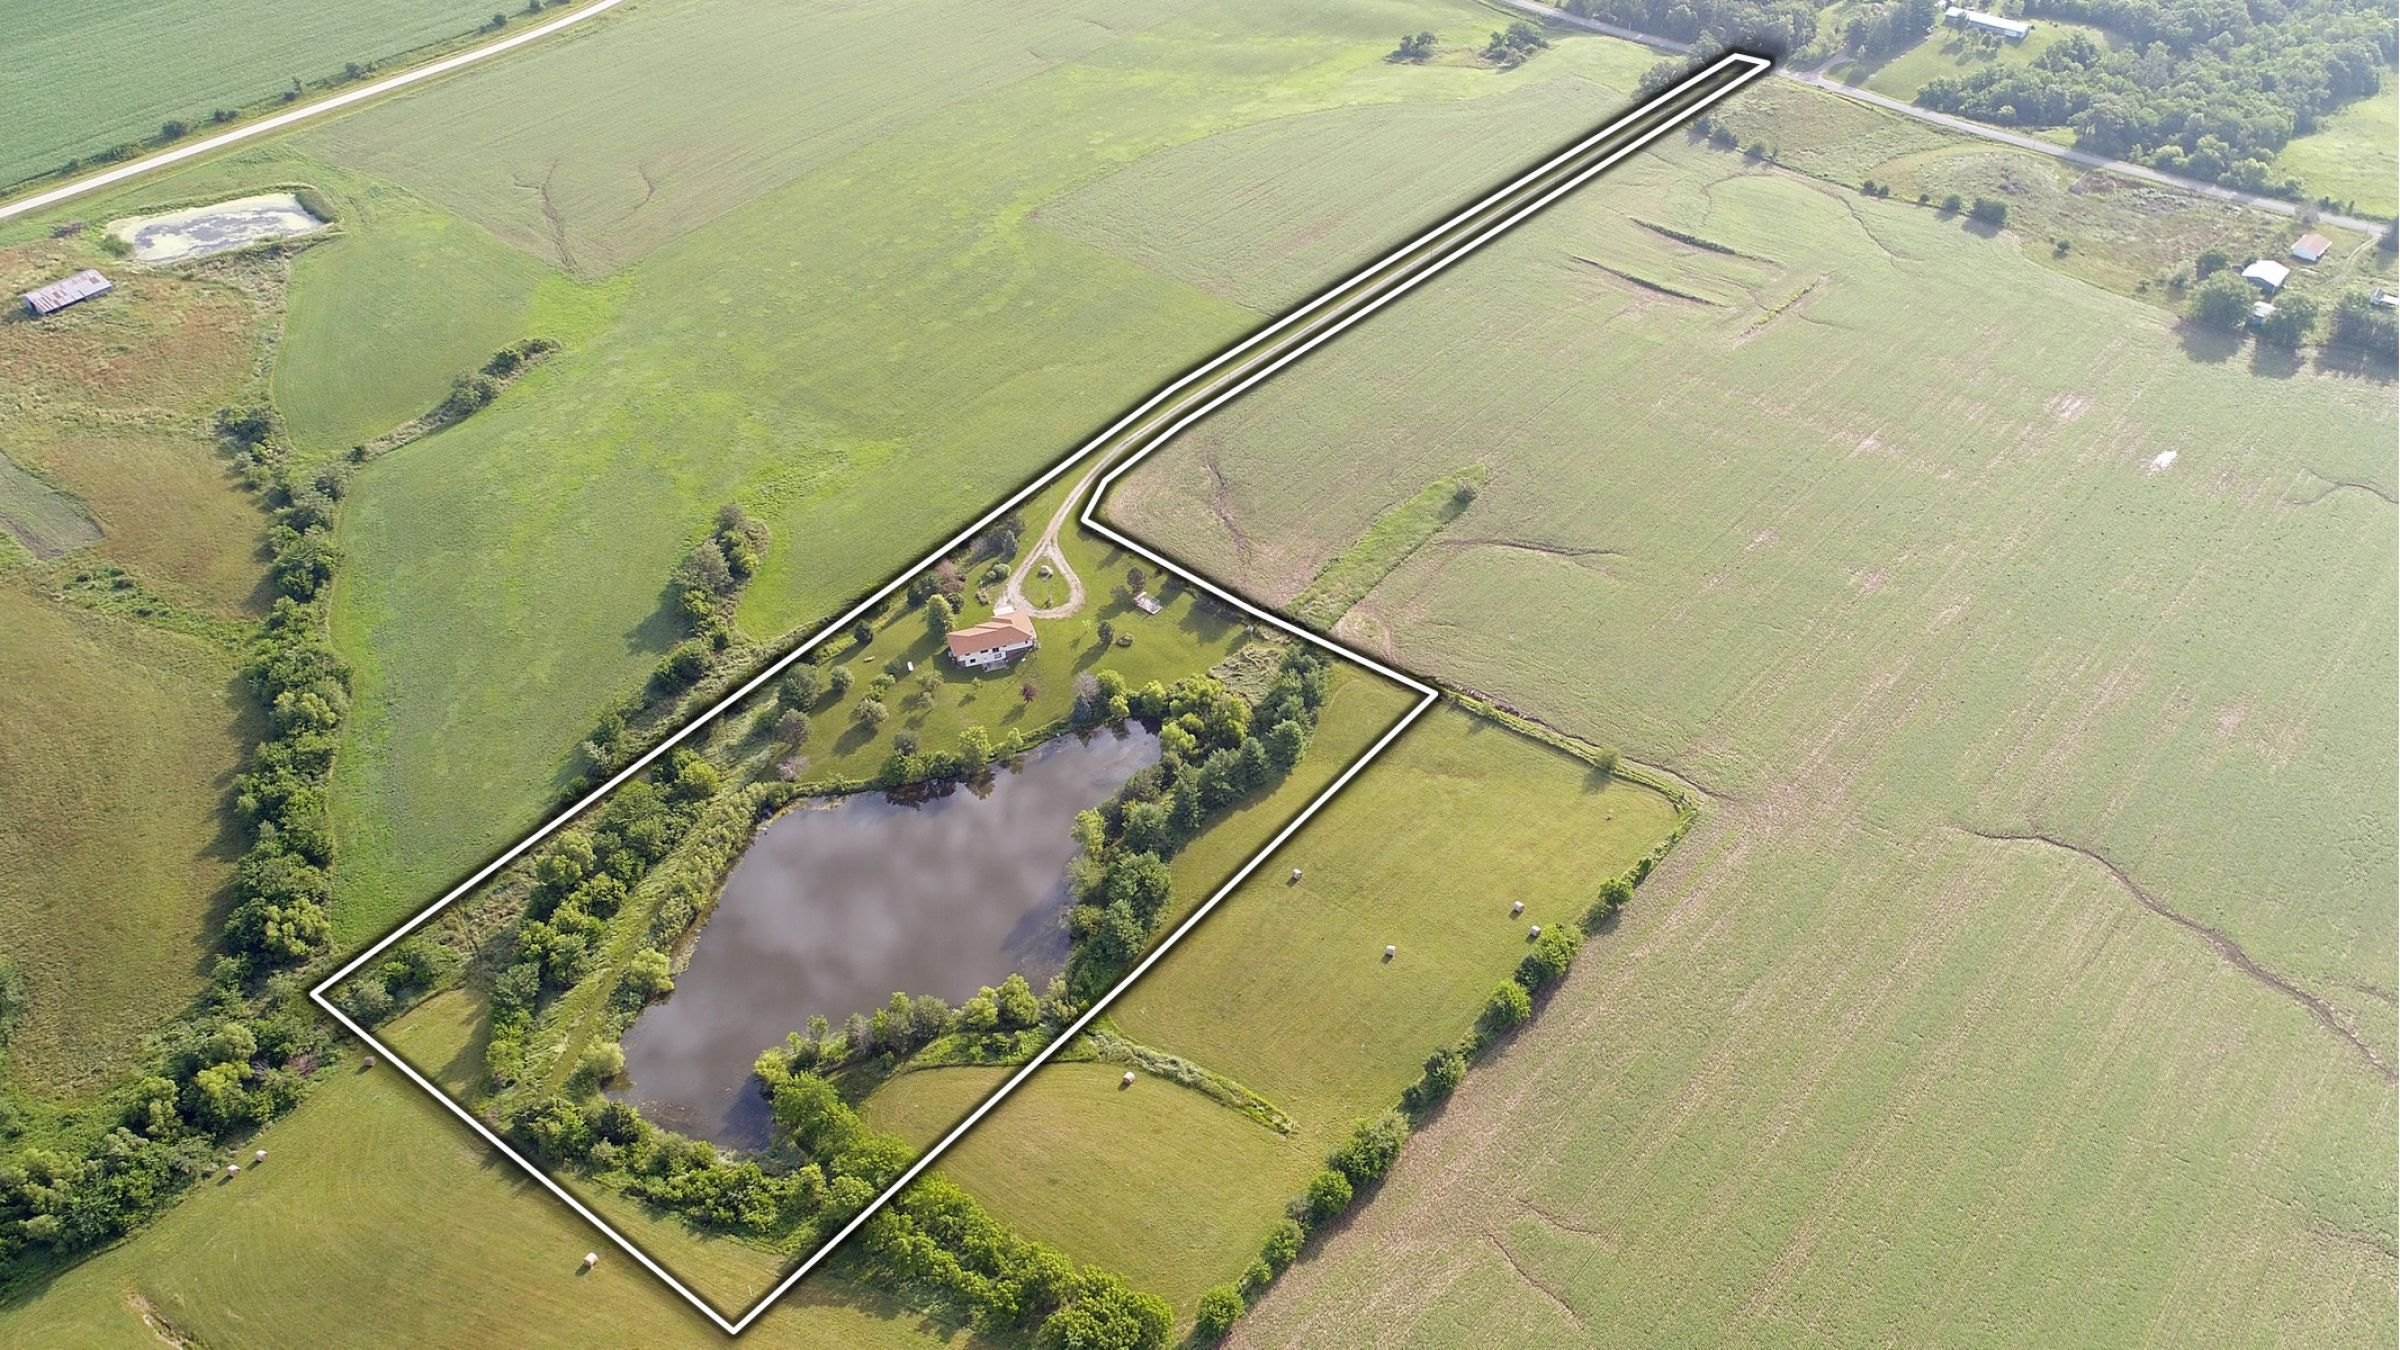 residential-lucas-county-iowa-9-acres-listing-number-15618-1-2021-06-30-170143.jpg